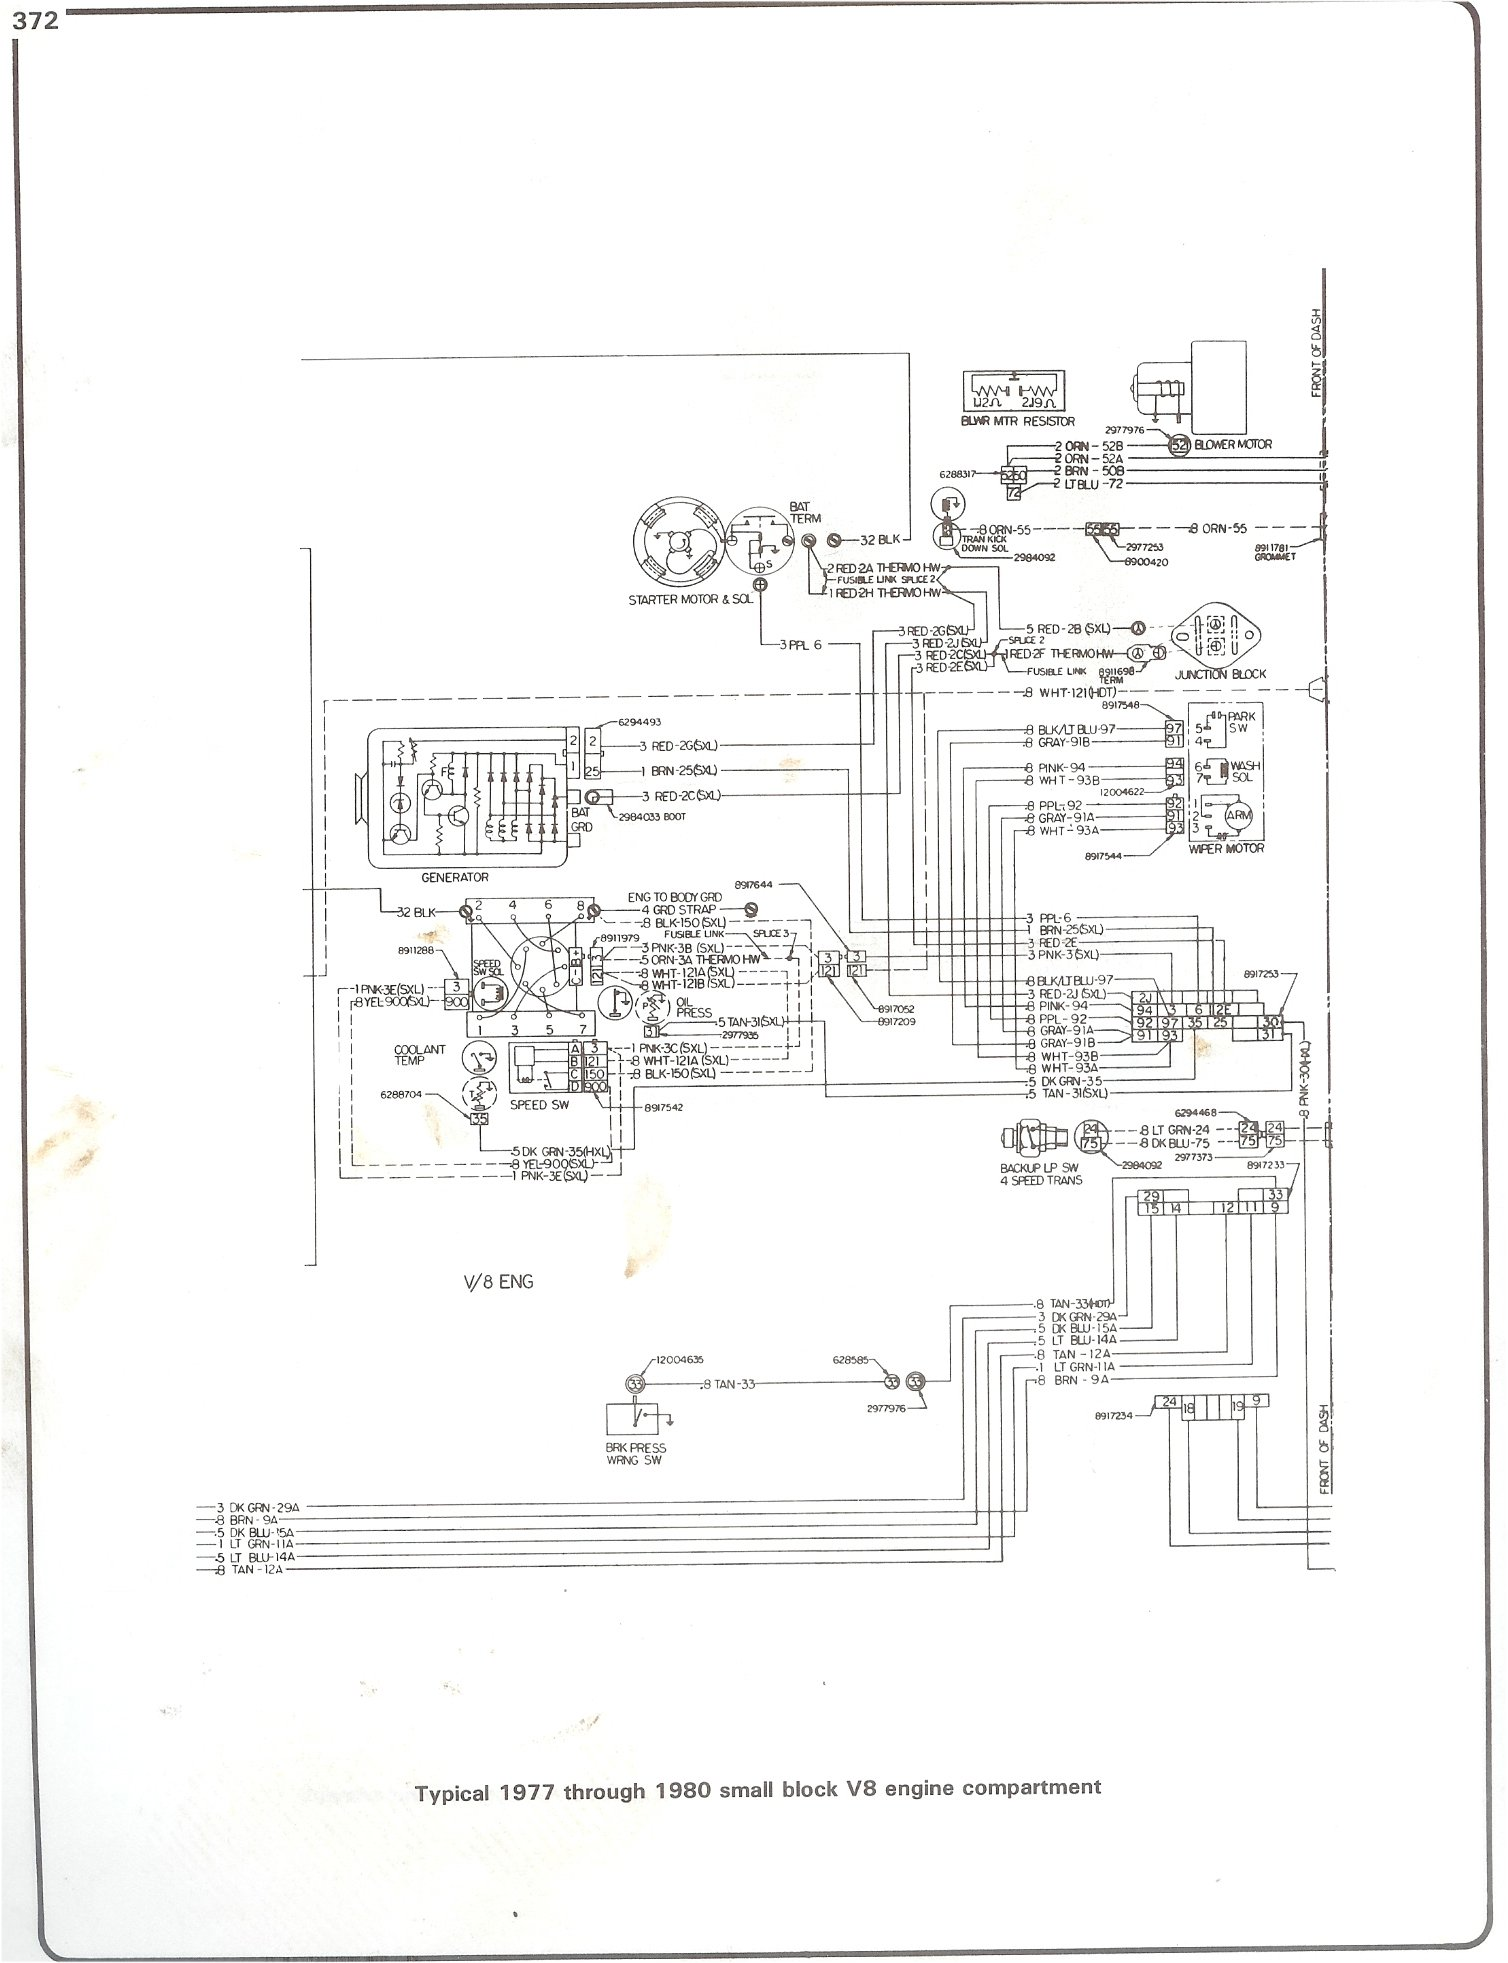 Complete 73 87 Wiring Diagrams 1990 Gmc Sierra 1500 Diagram 77 80 Sbc Engine